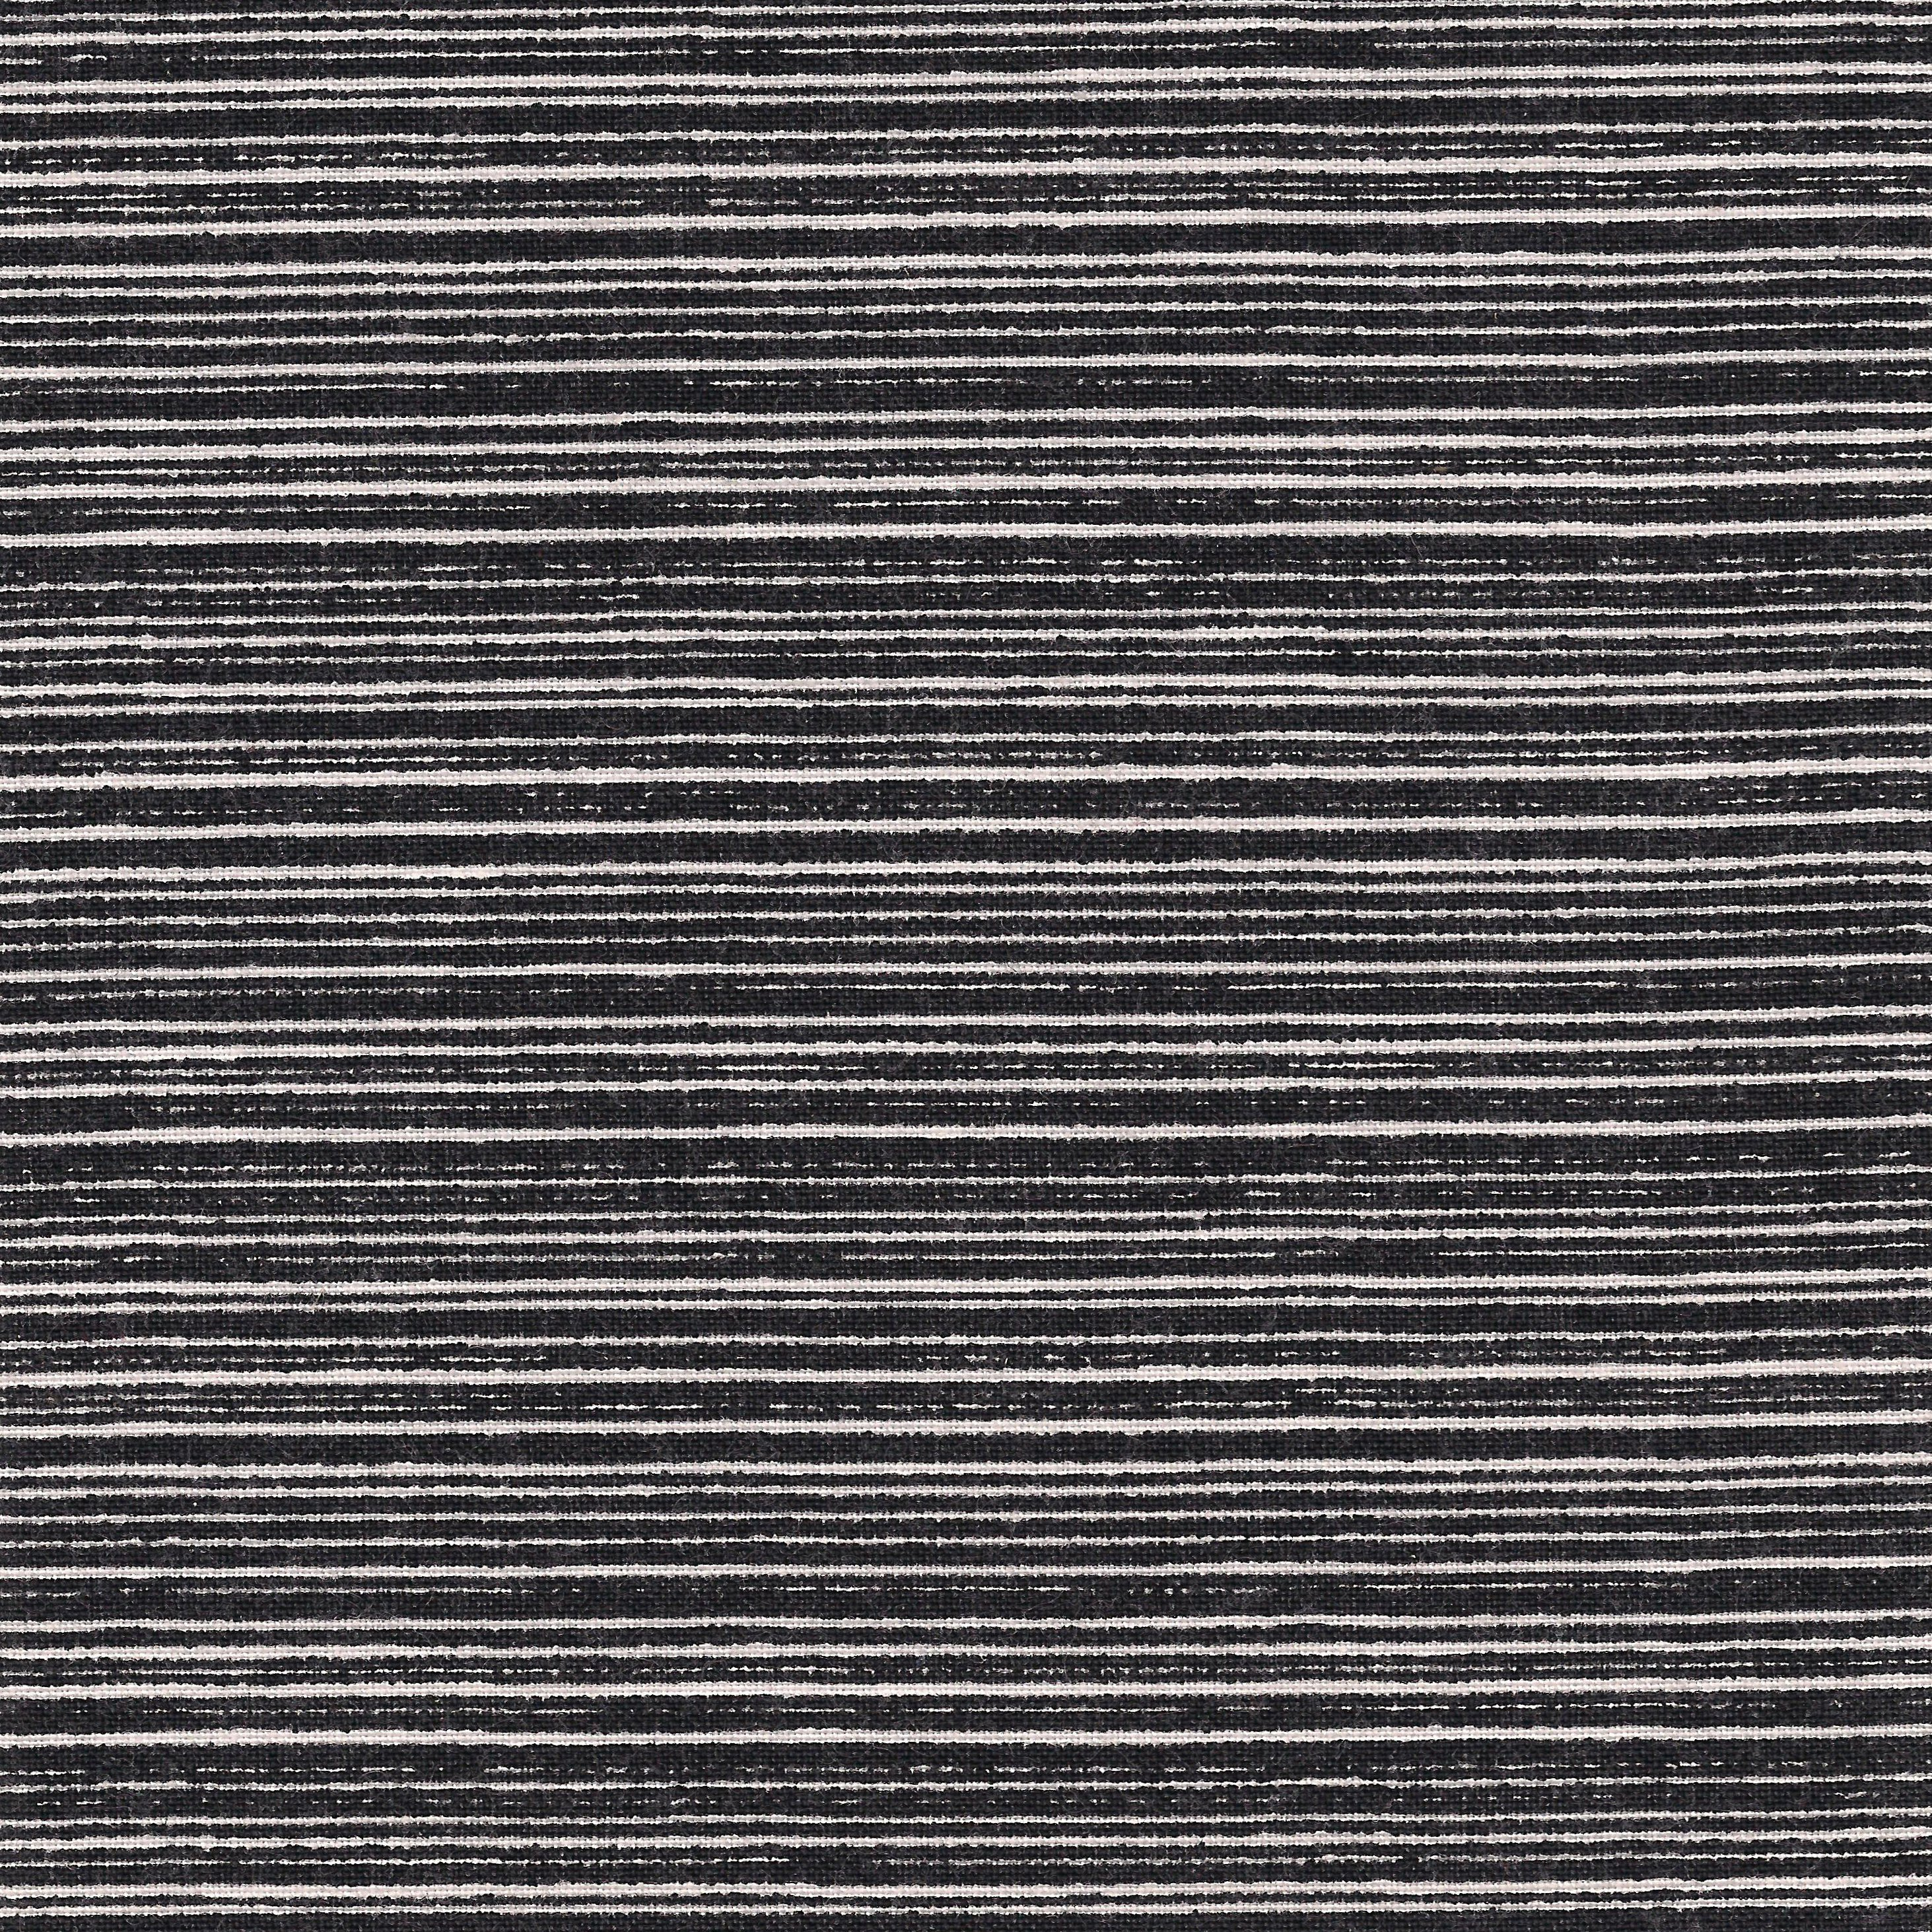 Black And White Striped Fabric Texture Picture Free Photograph